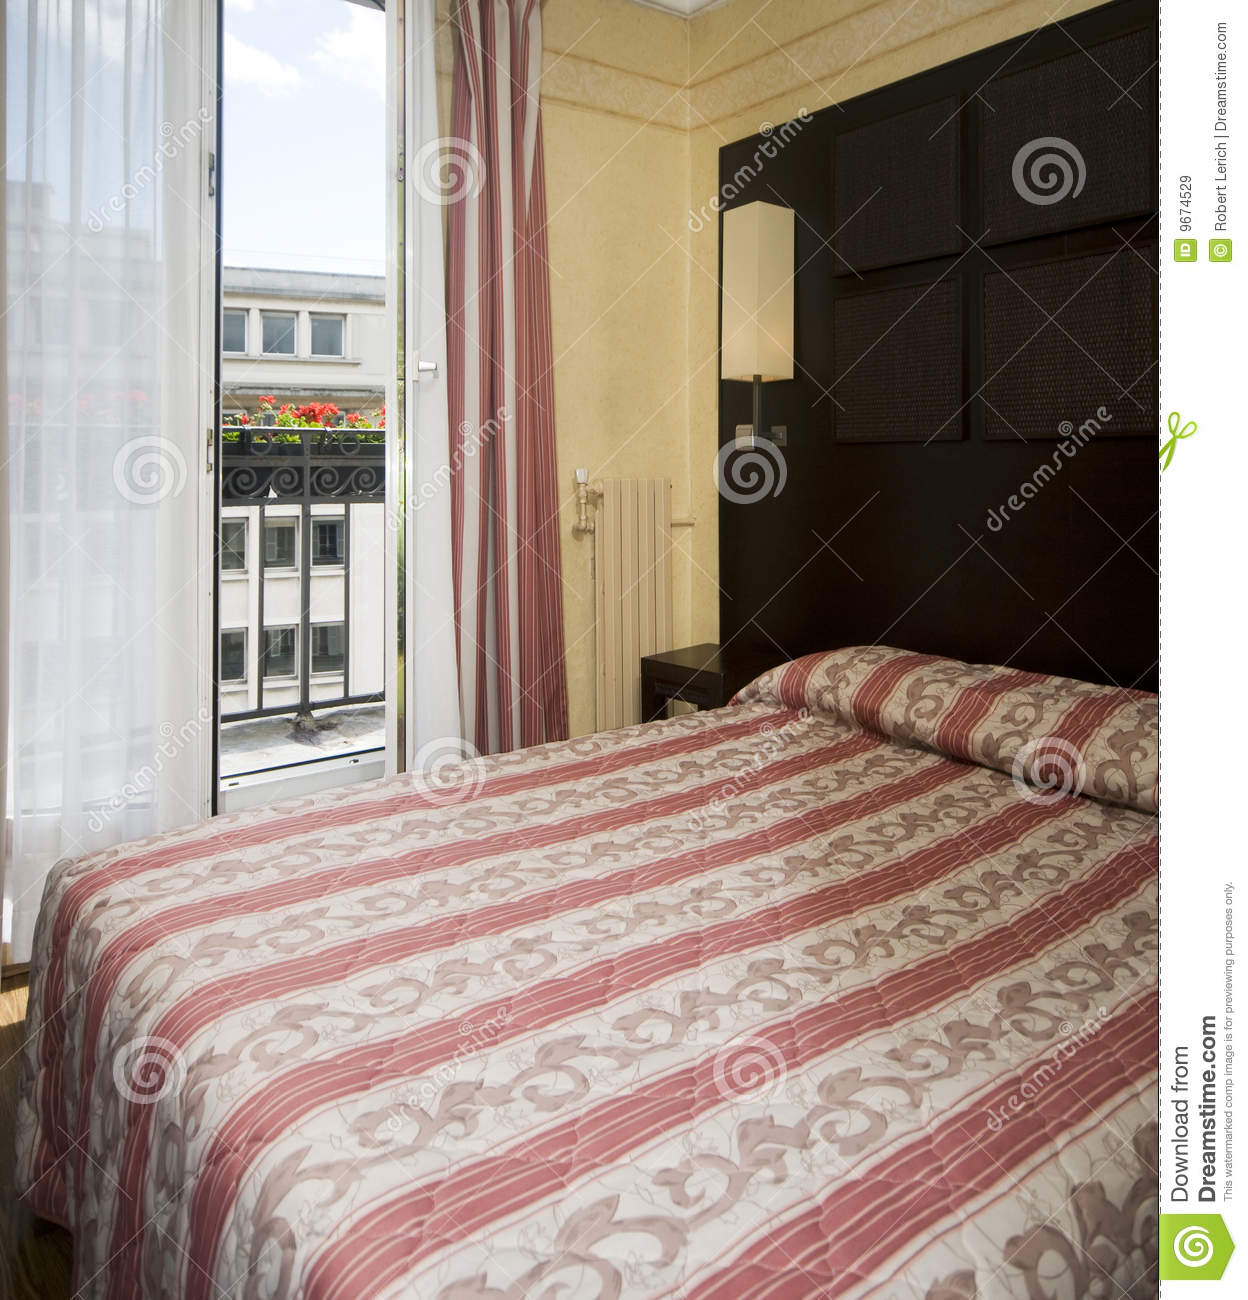 Two Star Hotel Room Paris France Royalty Free Stock Images